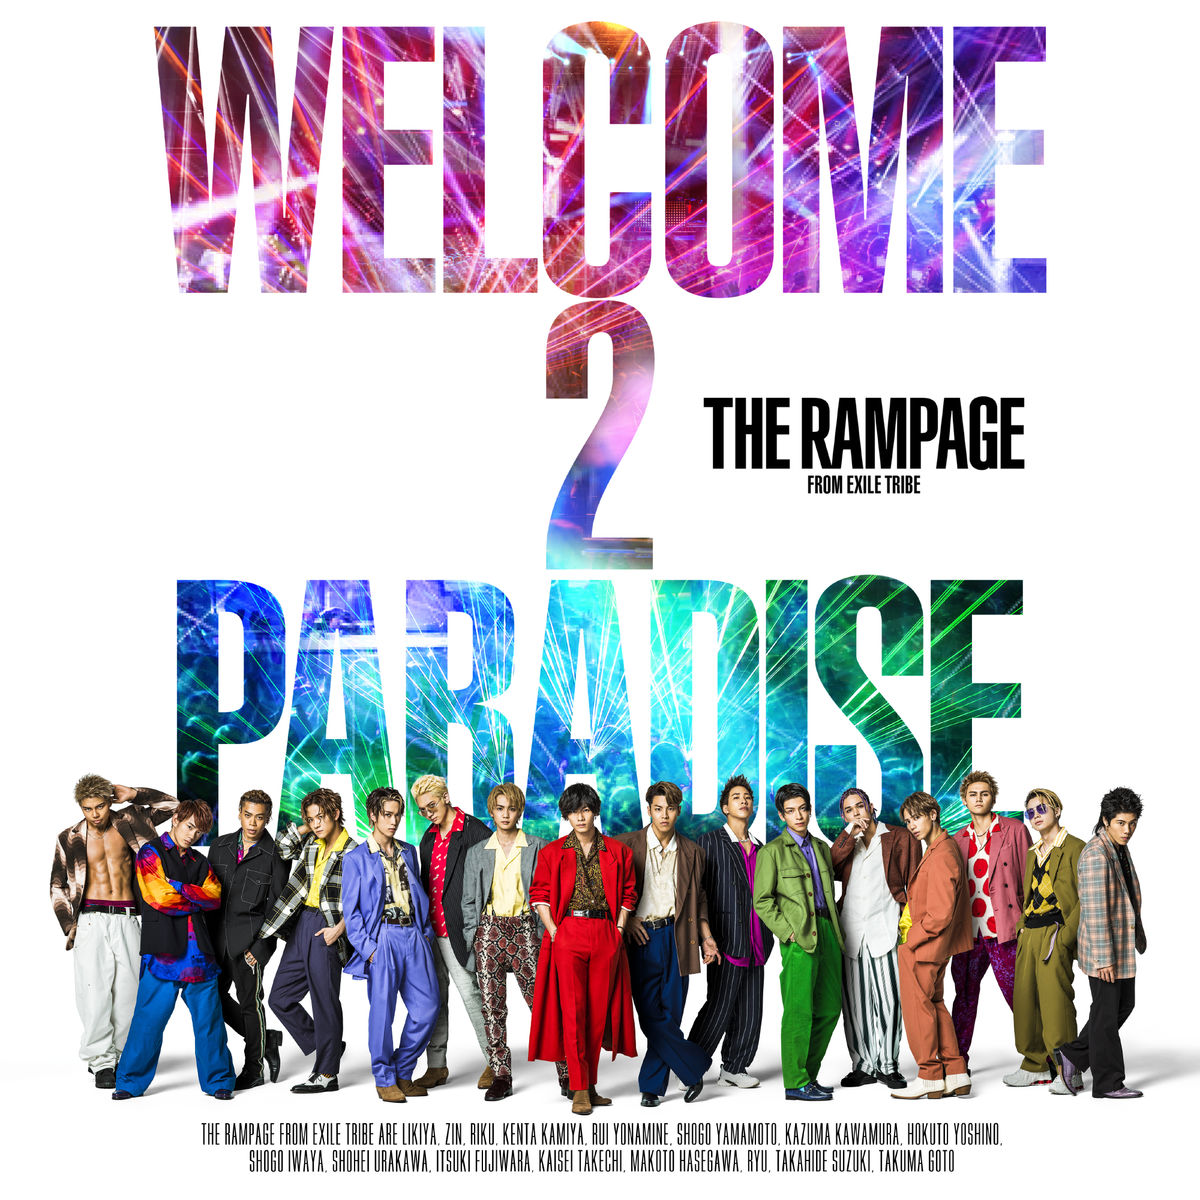 『THE RAMPAGE from EXILE TRIBE - SUMMER DAYS』収録の『WELCOME 2 PARADISE』ジャケット